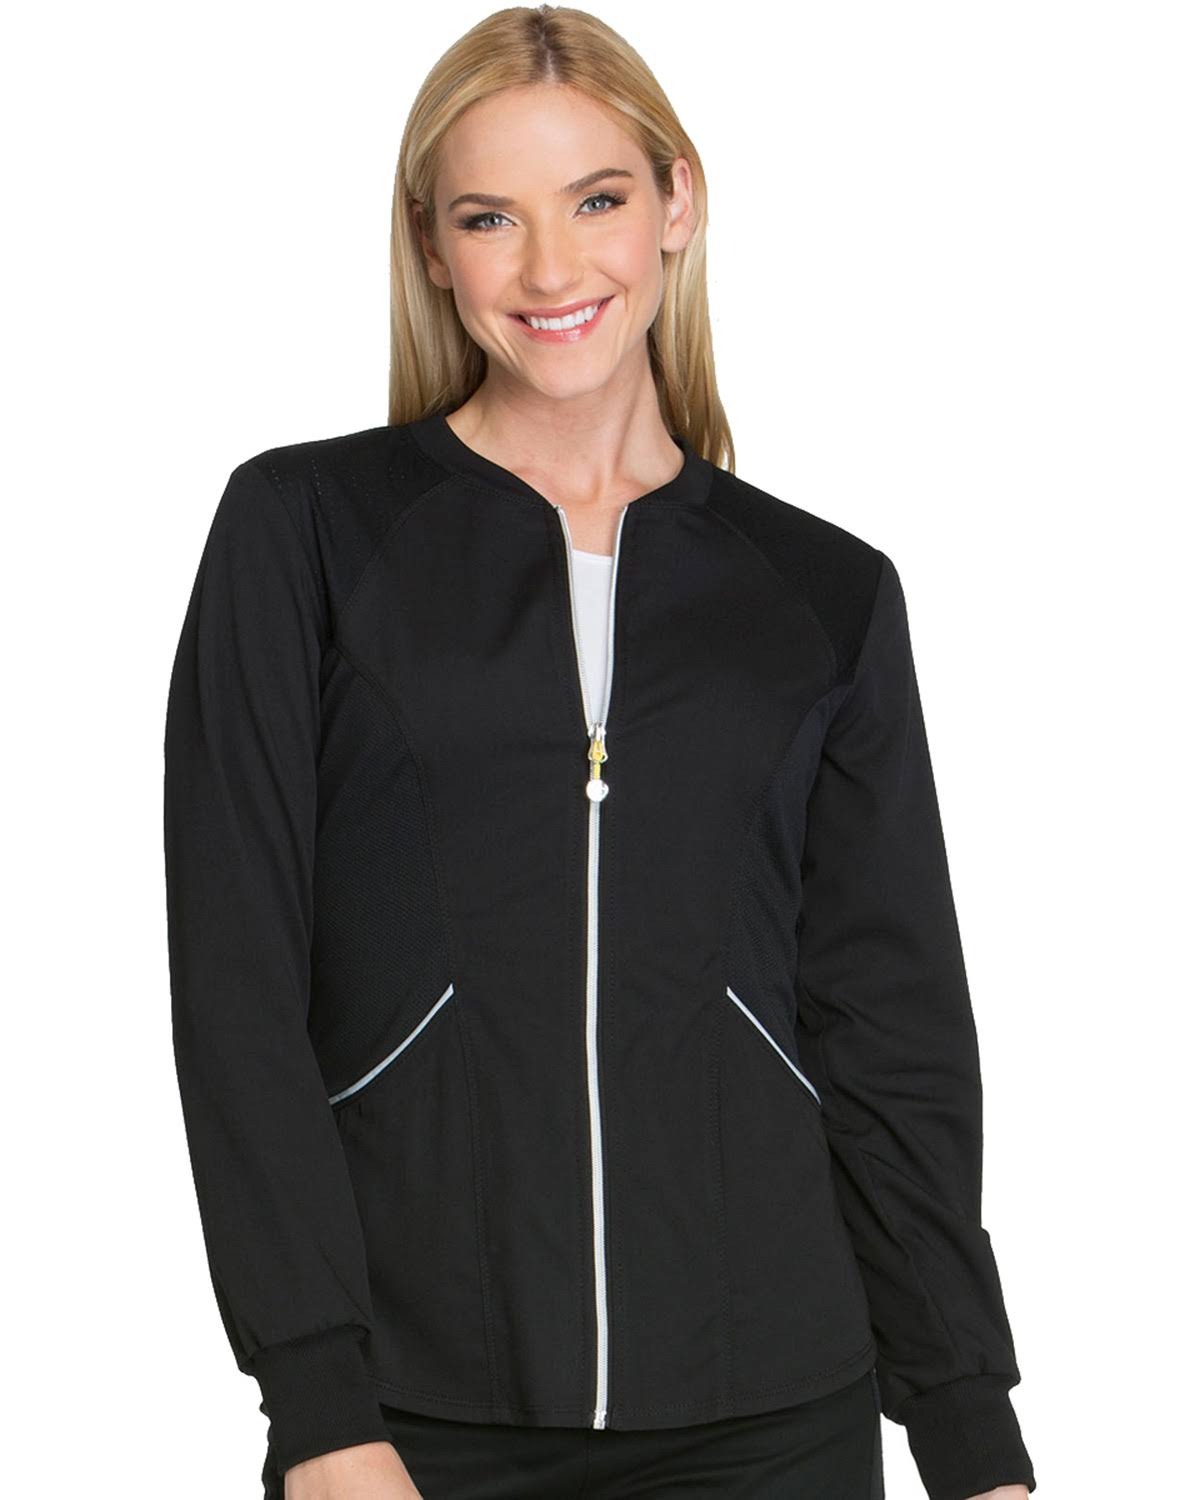 Cherokee Women's Luxe Sport Zip Front Warm-Up Jacket, Black, 5XL